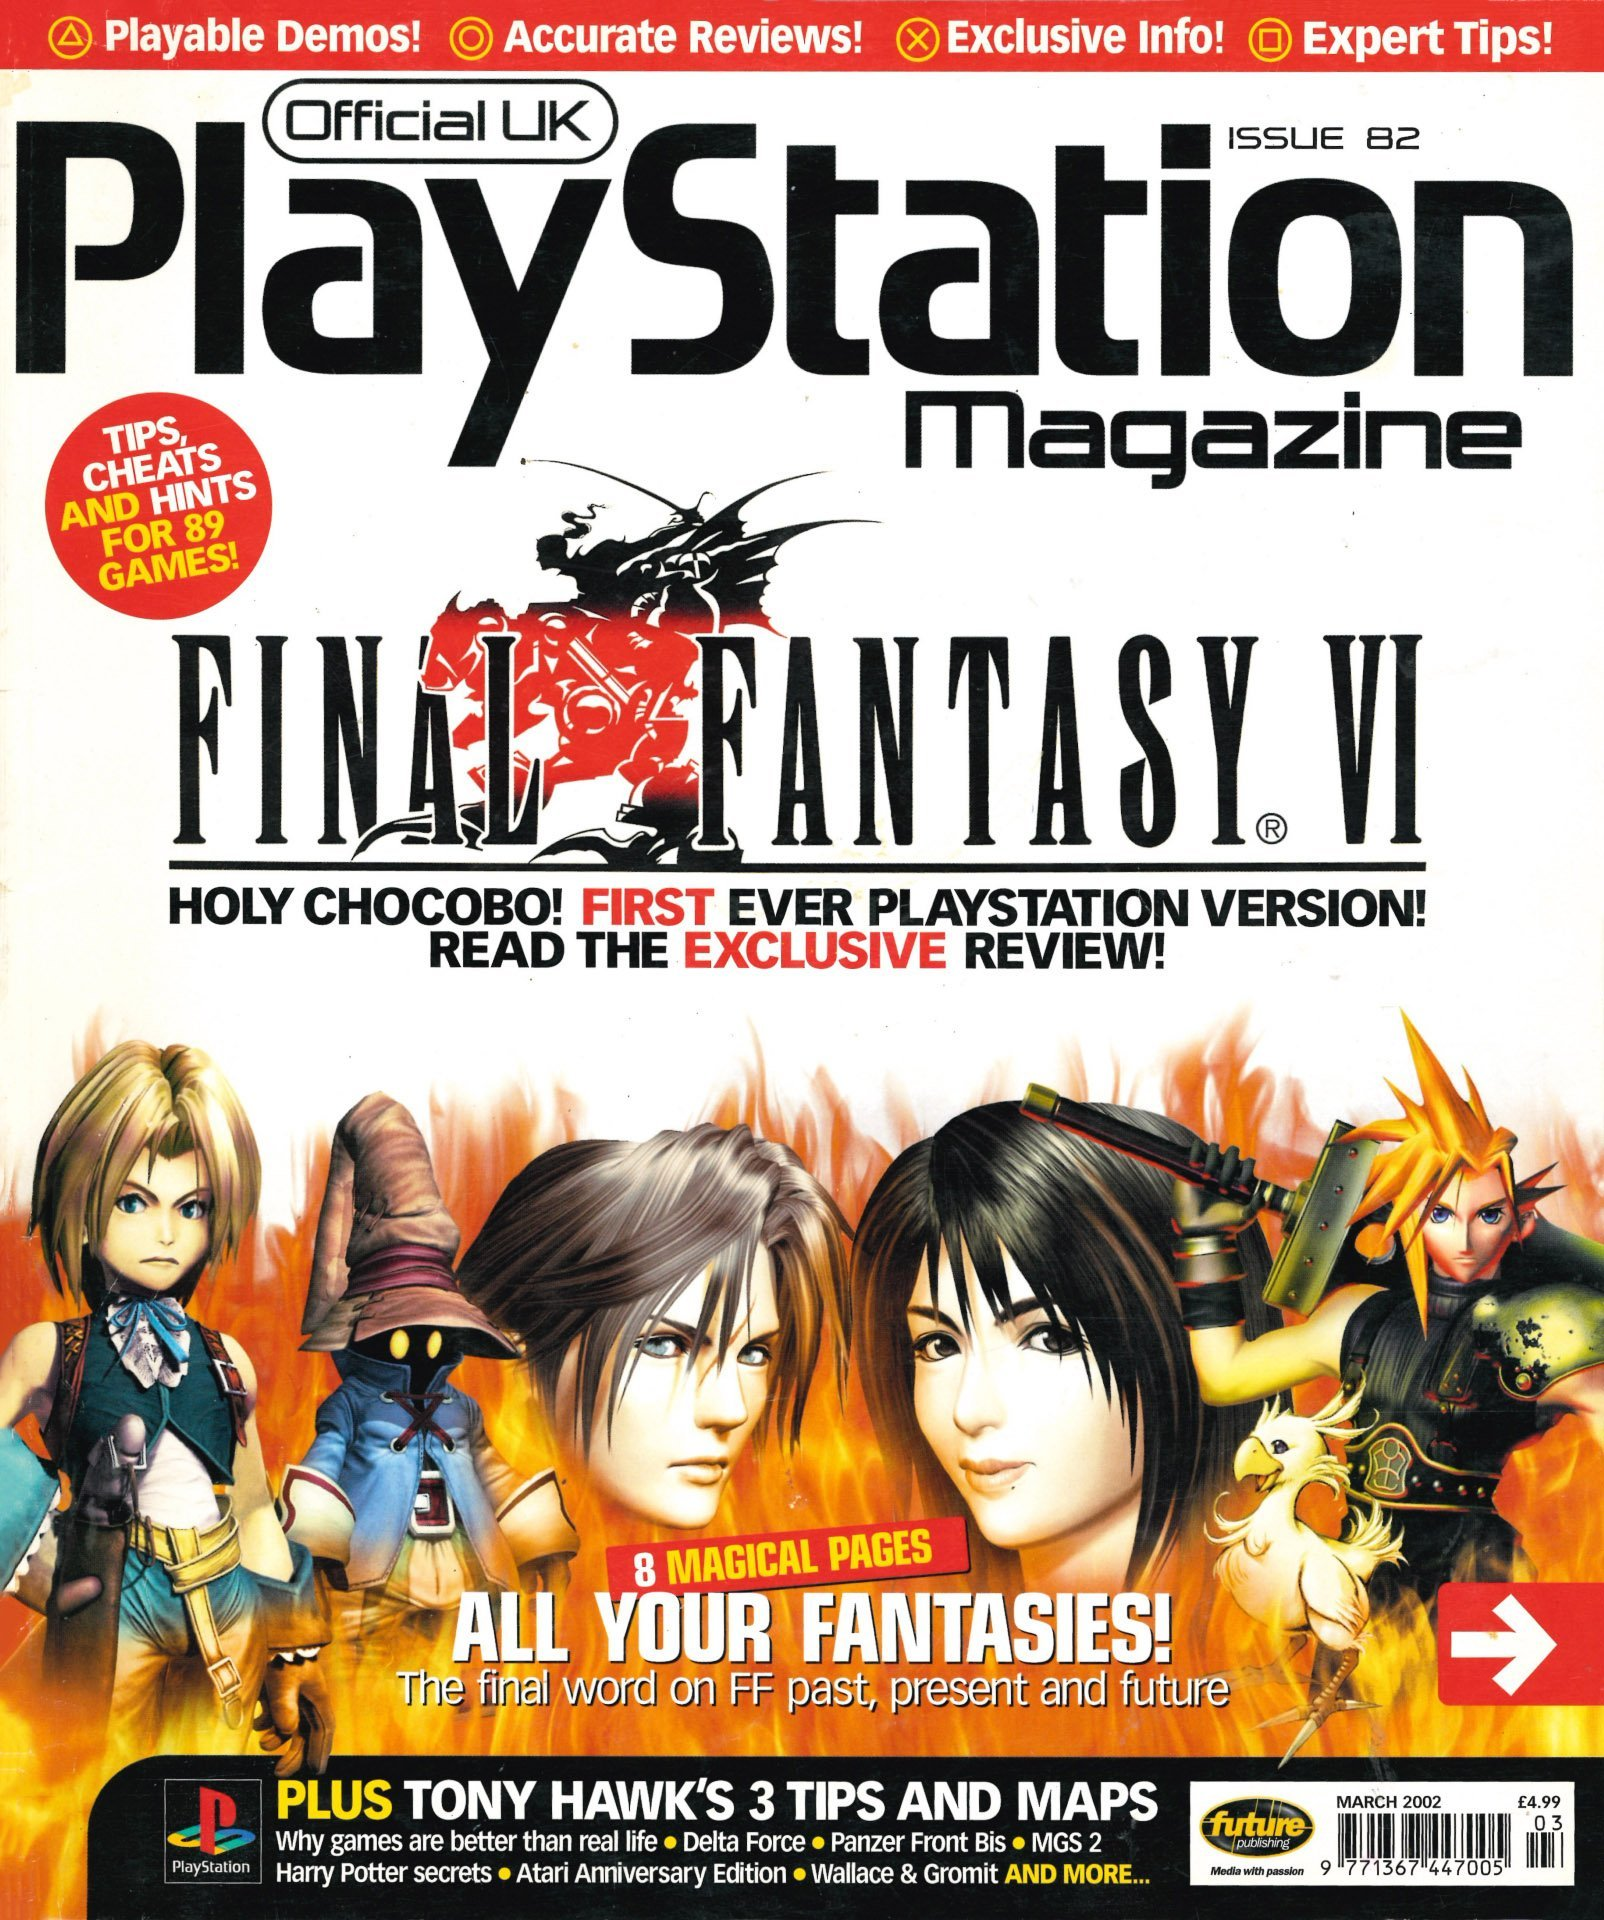 Official UK PlayStation Magazine Issue 082 (March 2002)